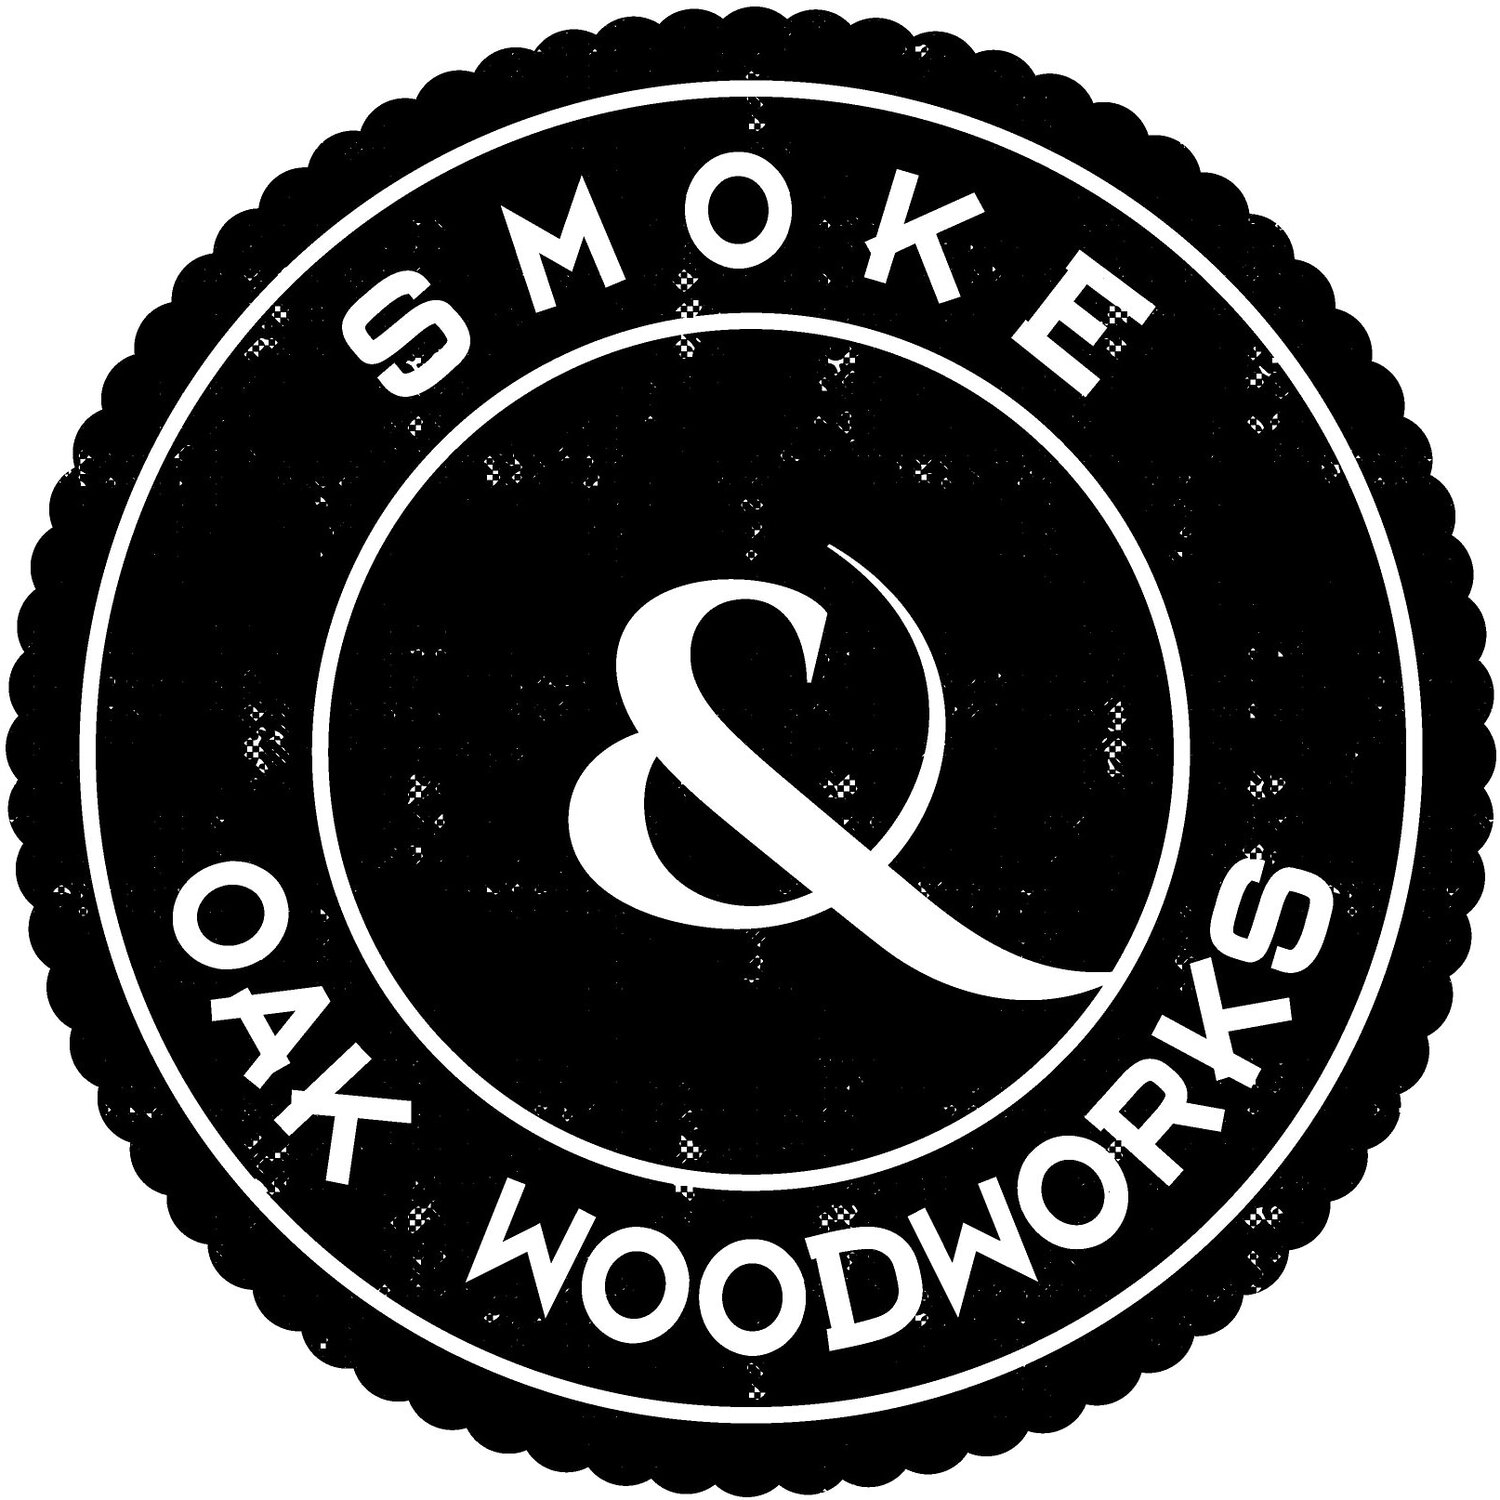 Smoke & Oak Woodworks